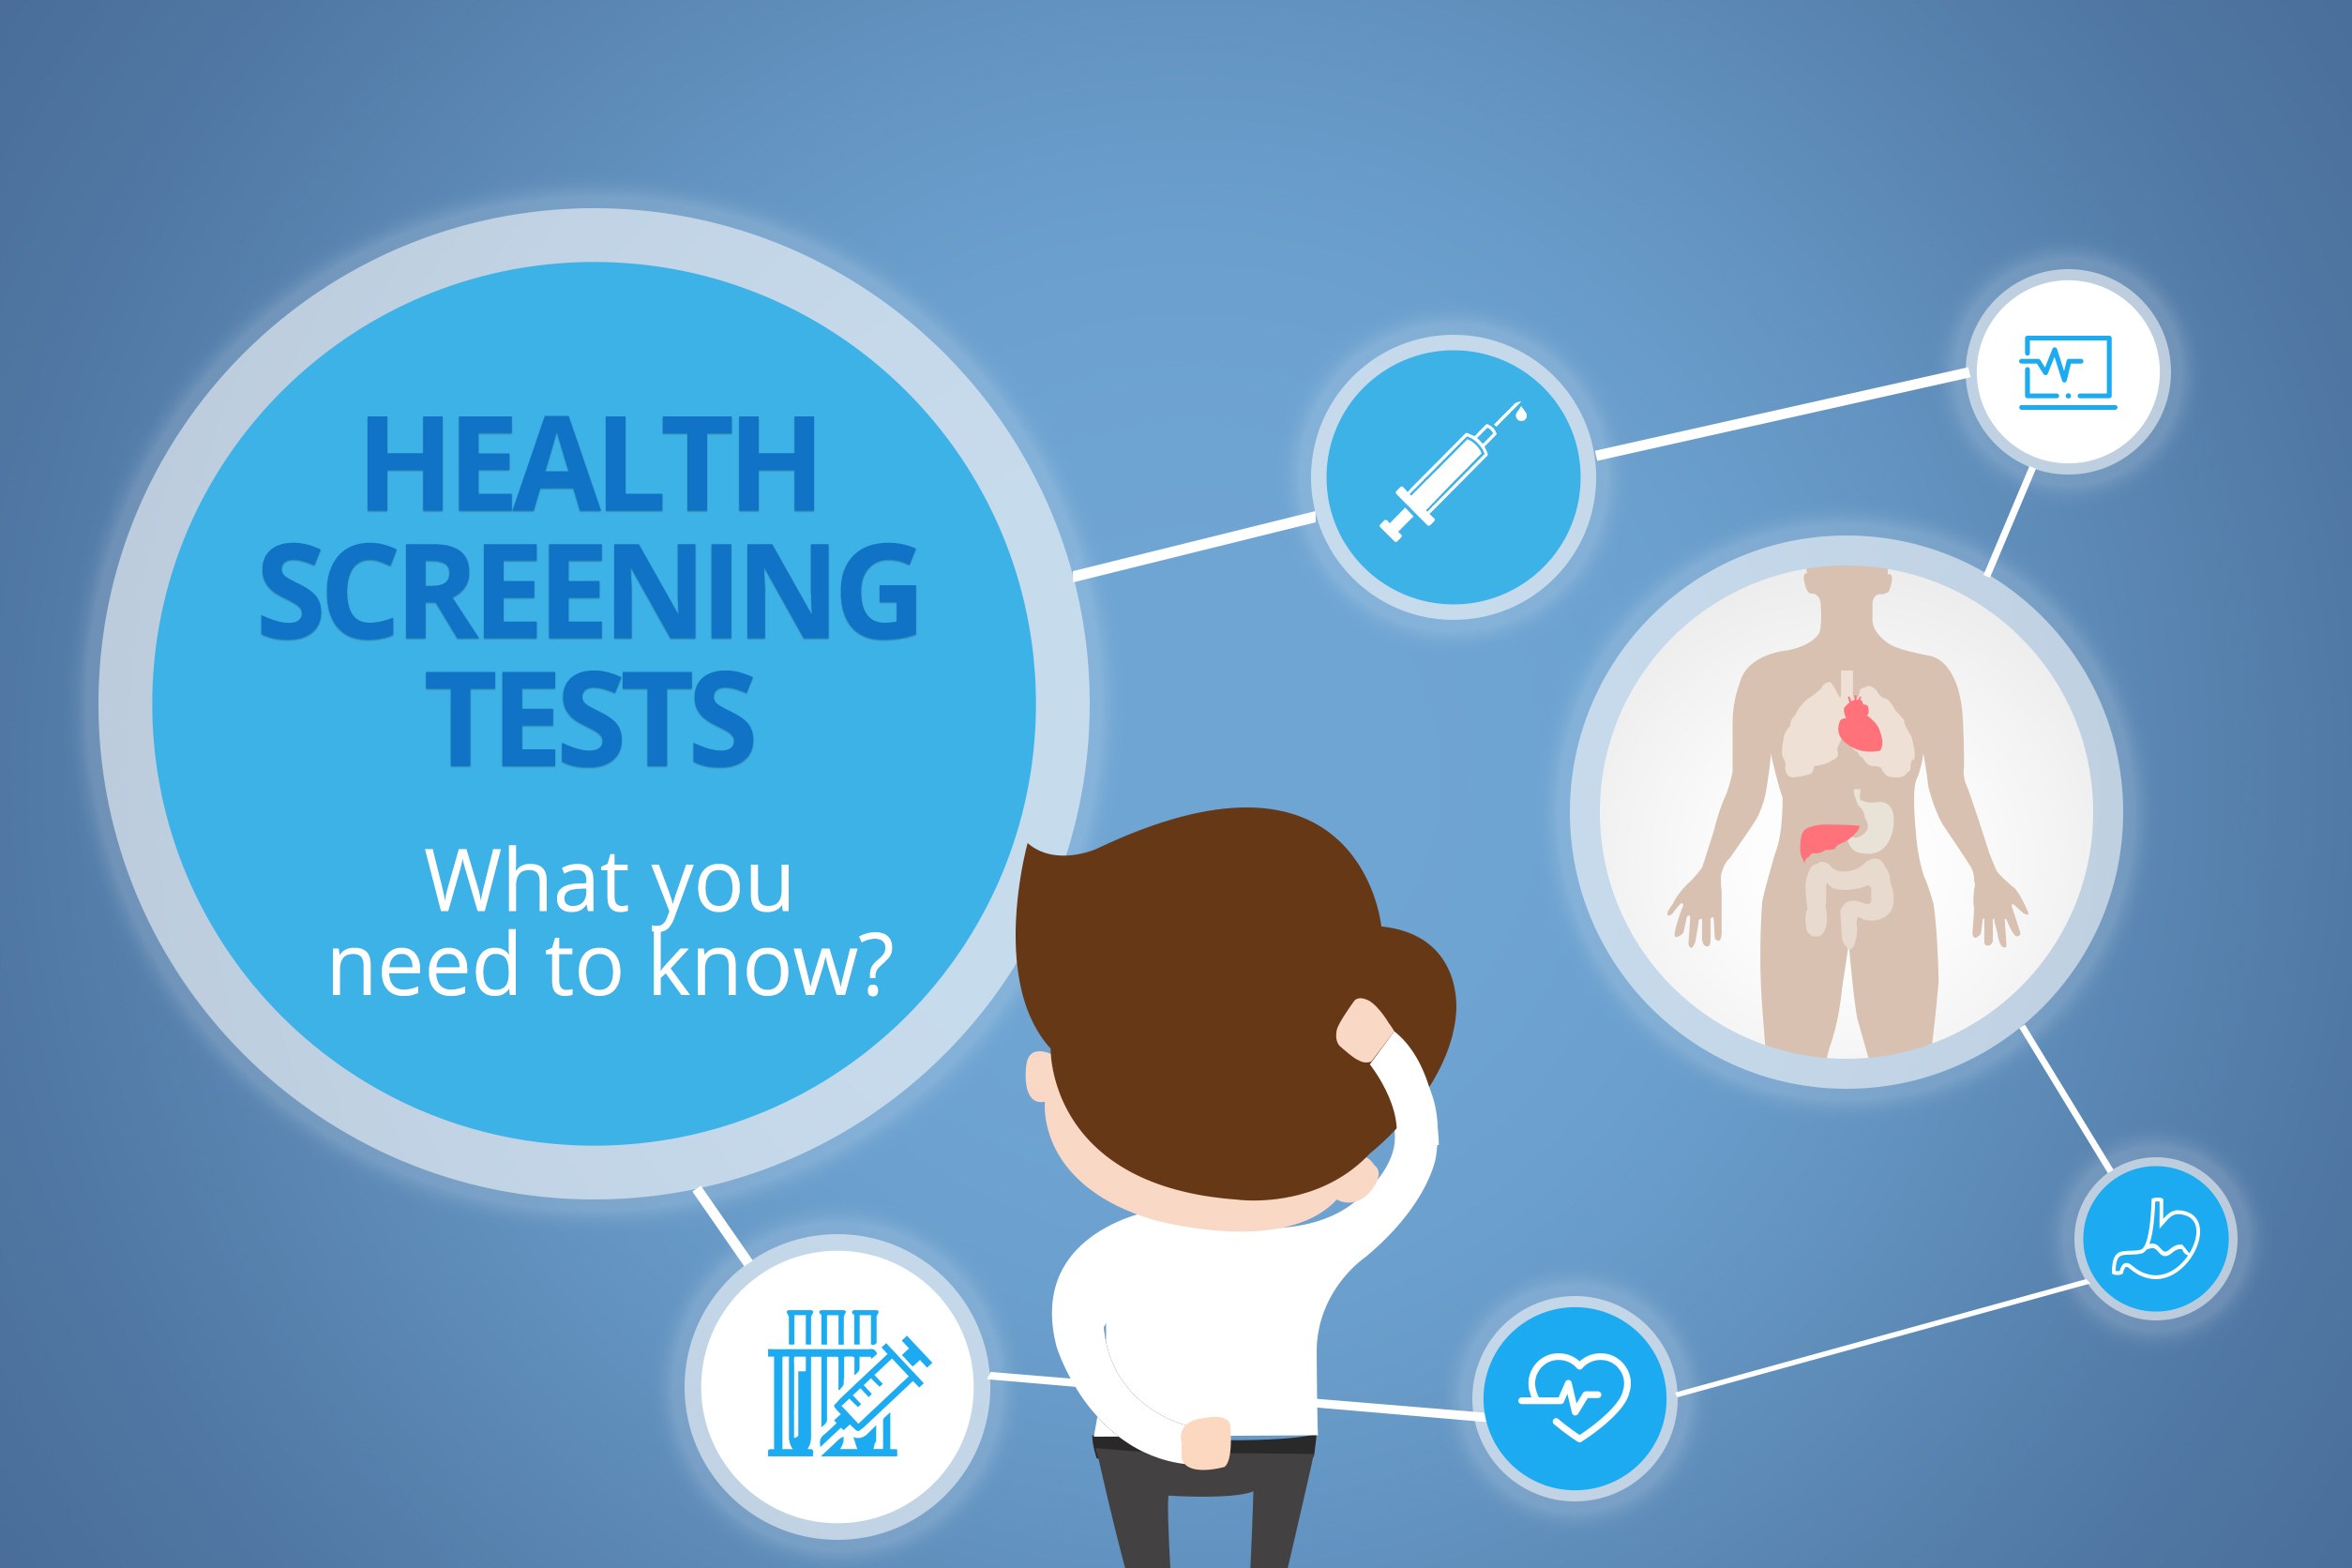 Health-Screening-Tests-What-You-Need-To-Know-main2.jpg